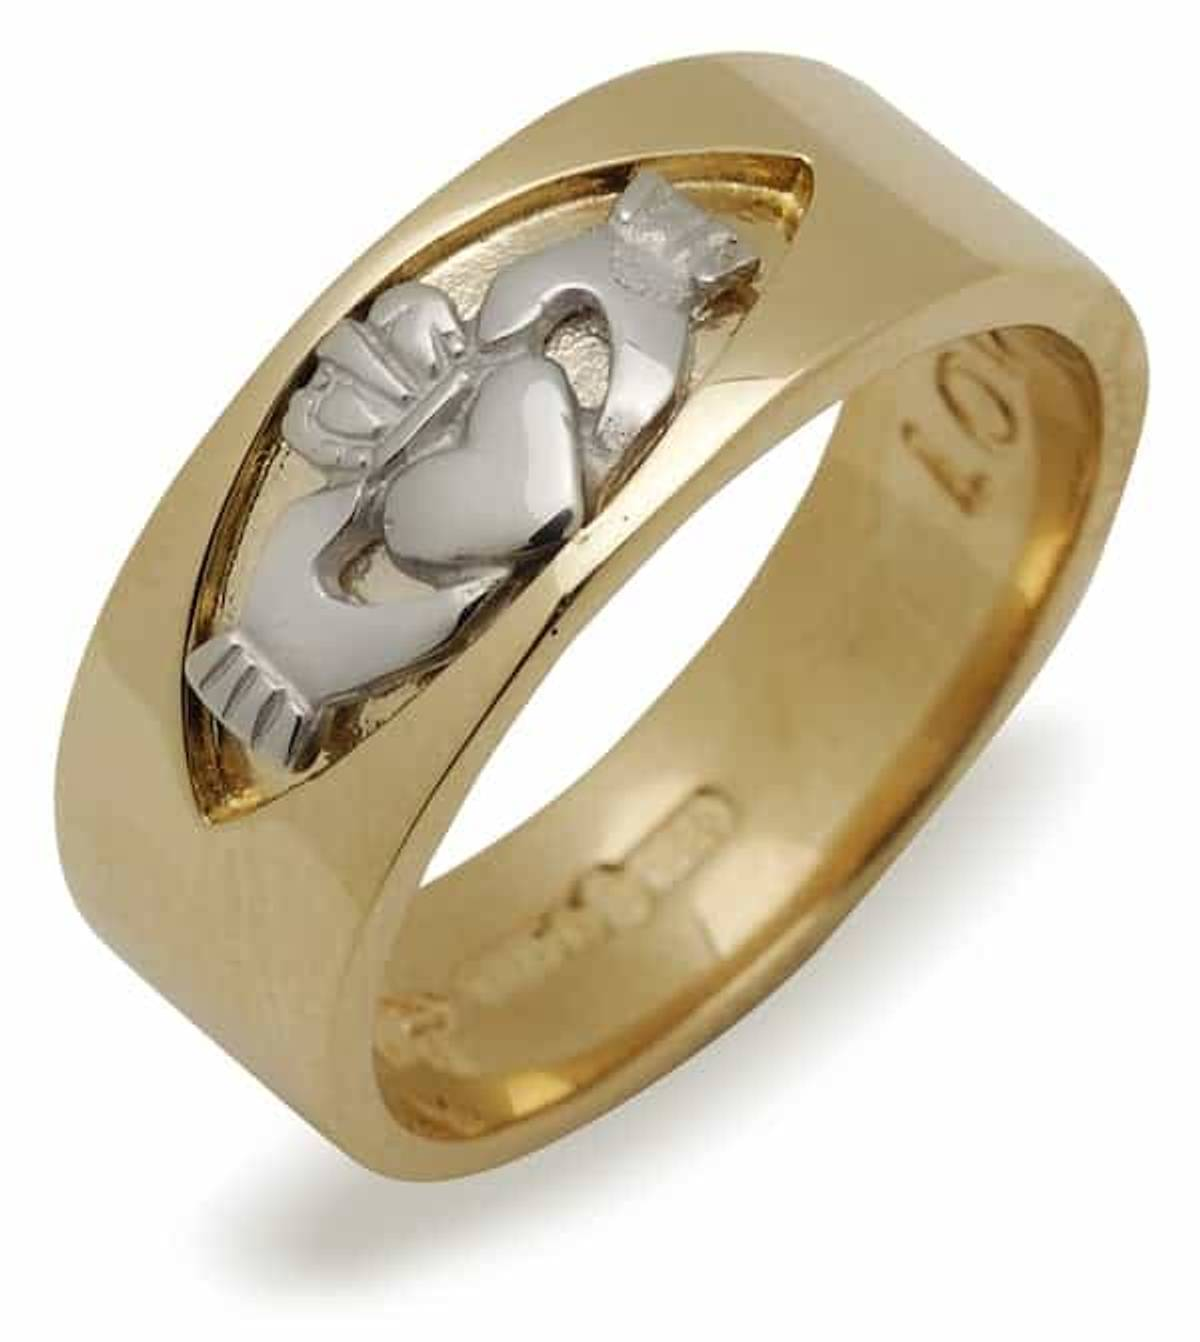 10 carat yellow gold Claddagh band with white gold insert in larger size